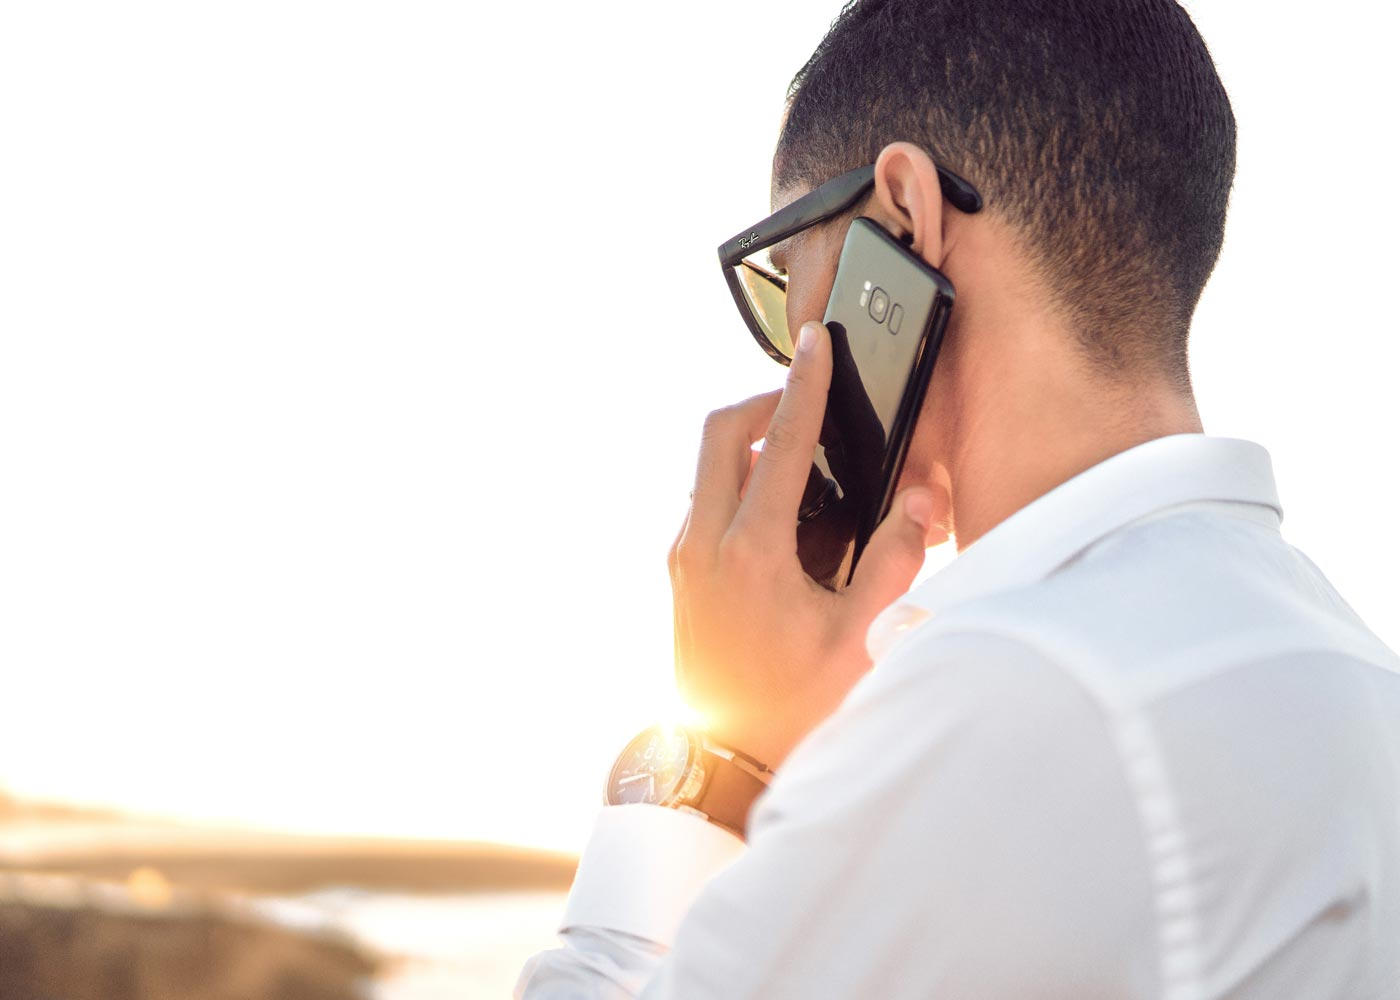 Person making a phone call with a mobile phone.